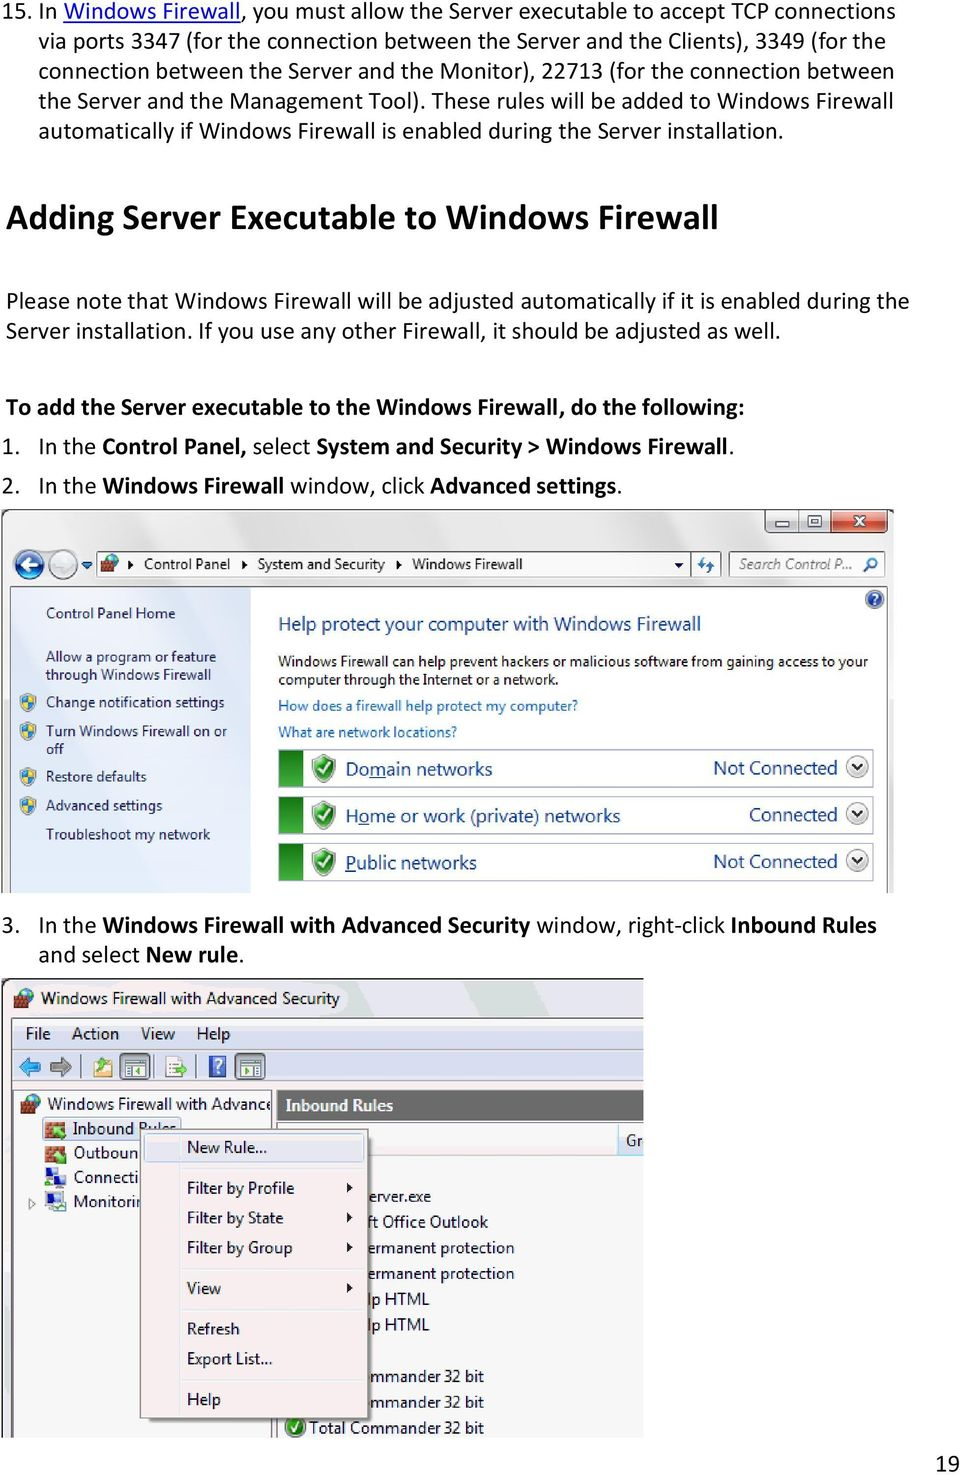 These rules will be added to Windows Firewall automatically if Windows Firewall is enabled during the Server installation.